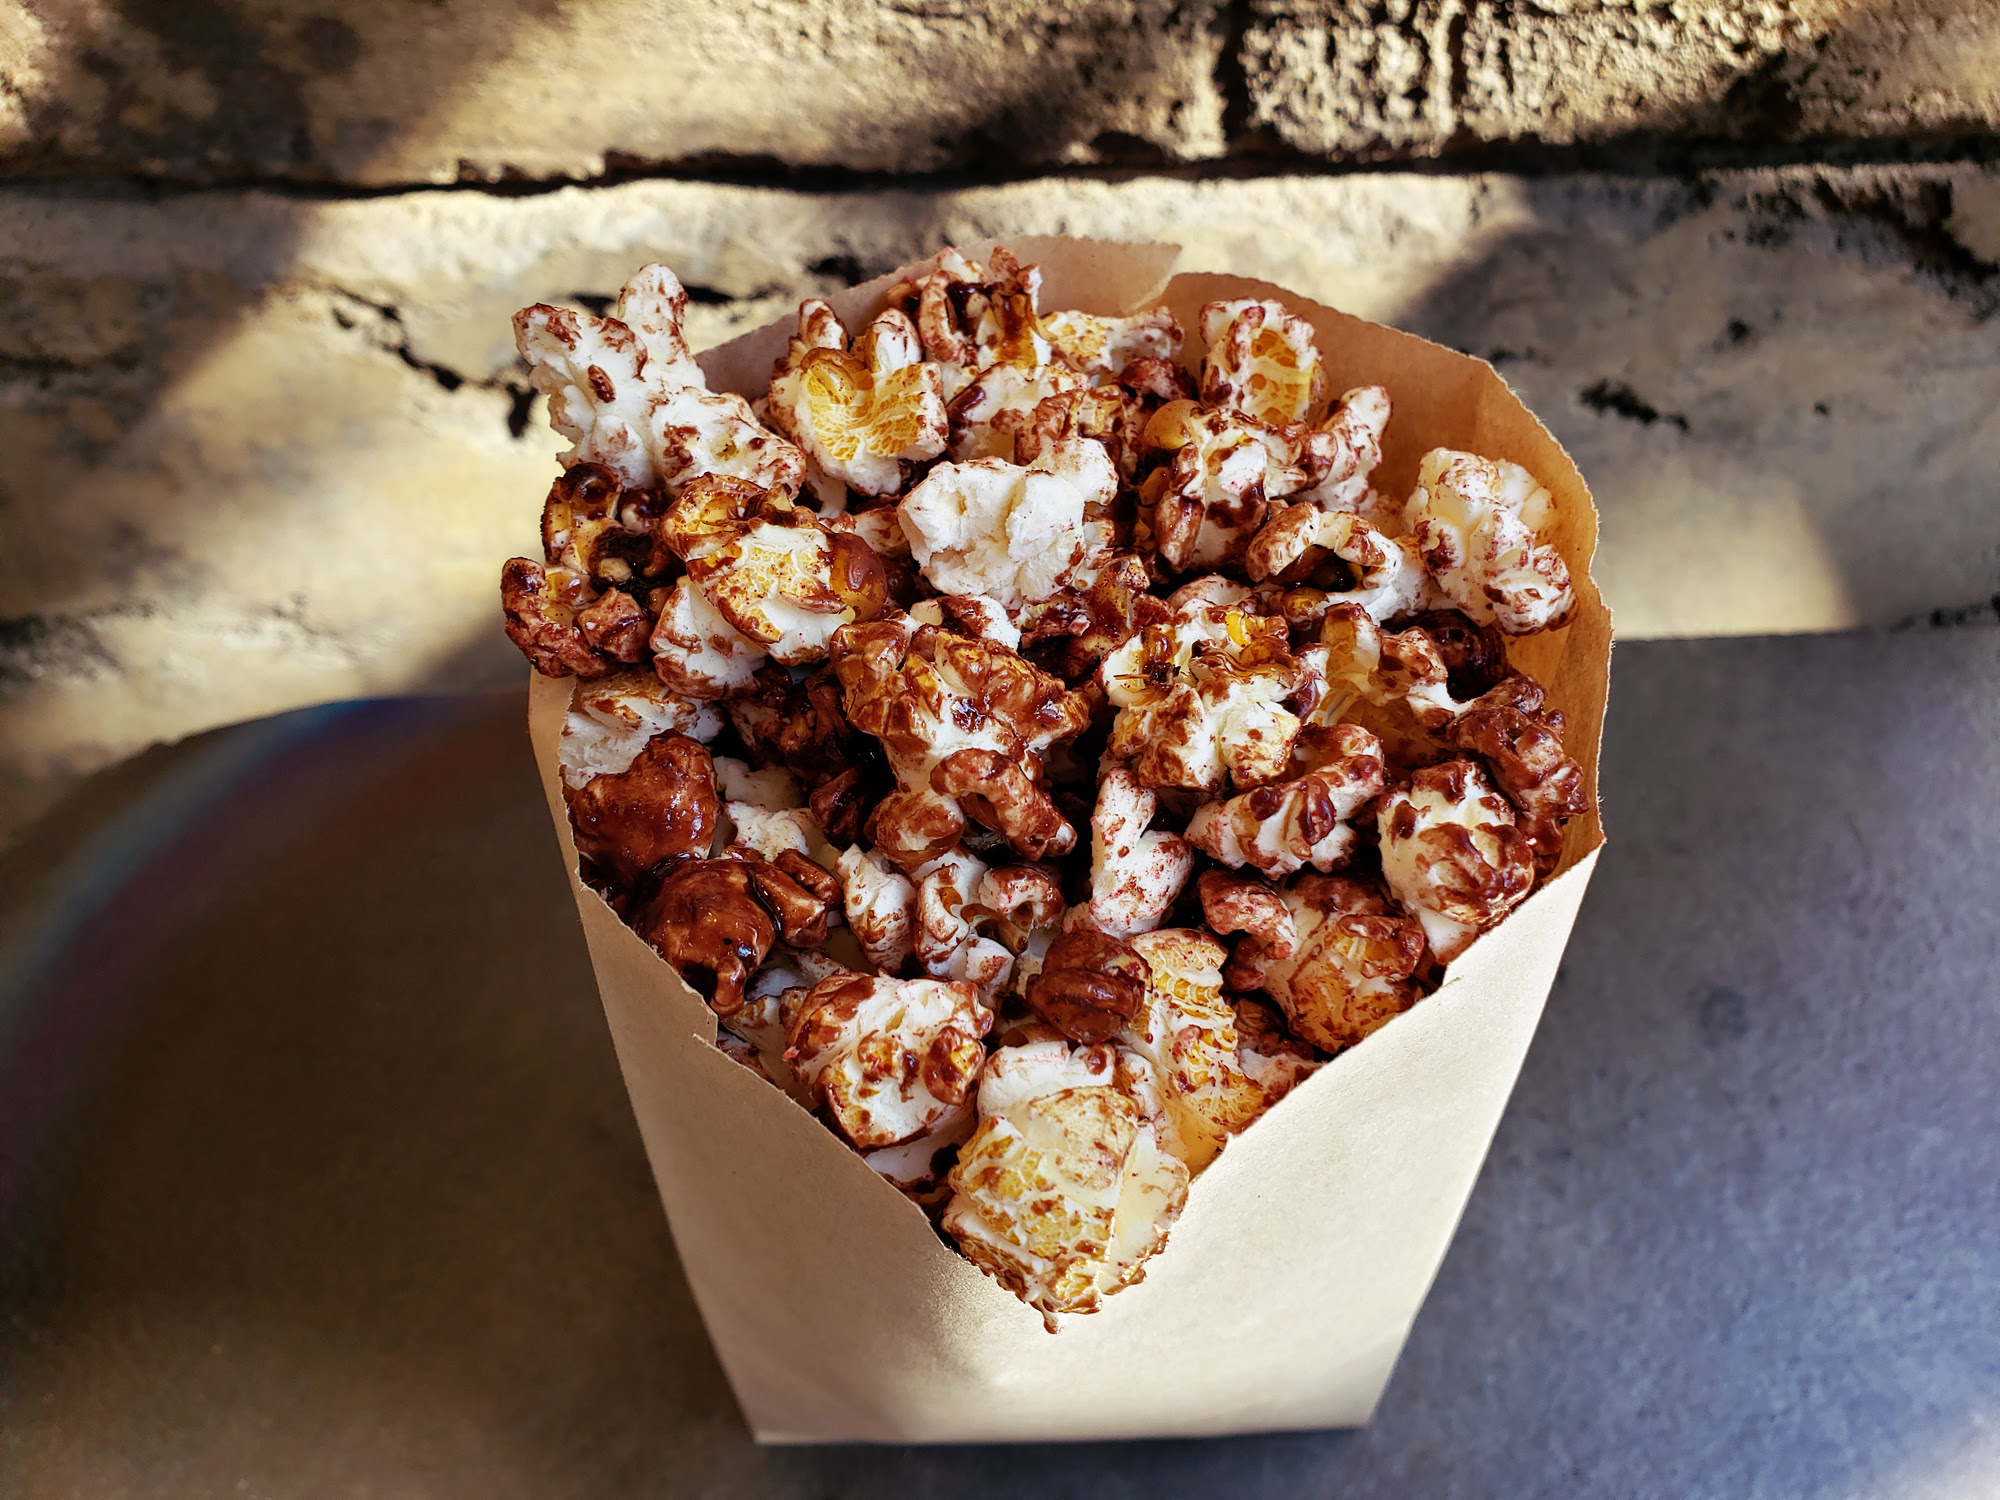 Star Wars: Galaxy's Edge - Chocolate Popcorn Review | Anakin and His Angel